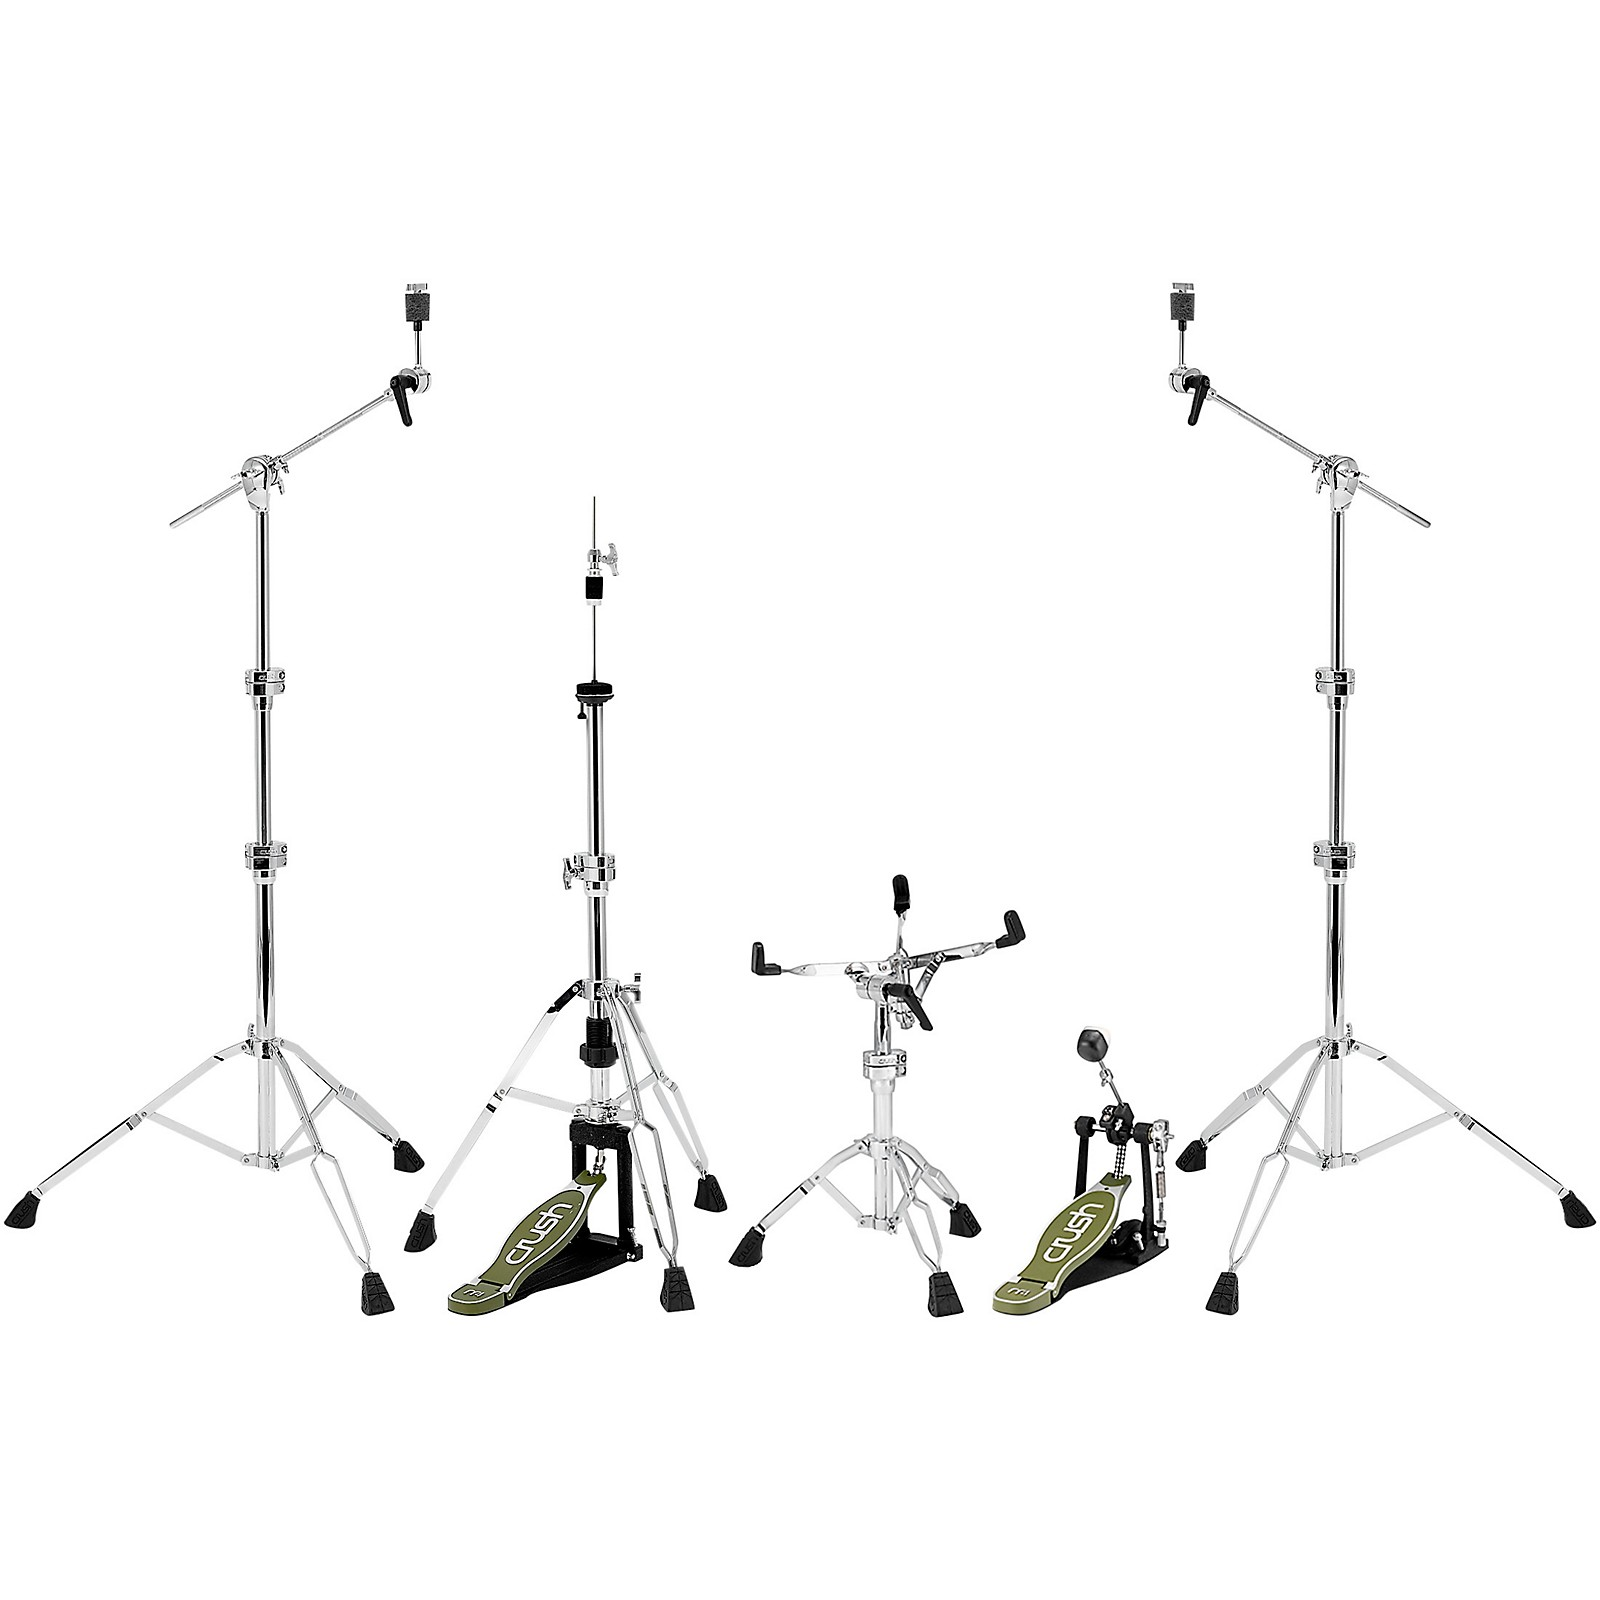 Crush Drums & Percussion M4 Series 5-Piece Hardware Pack